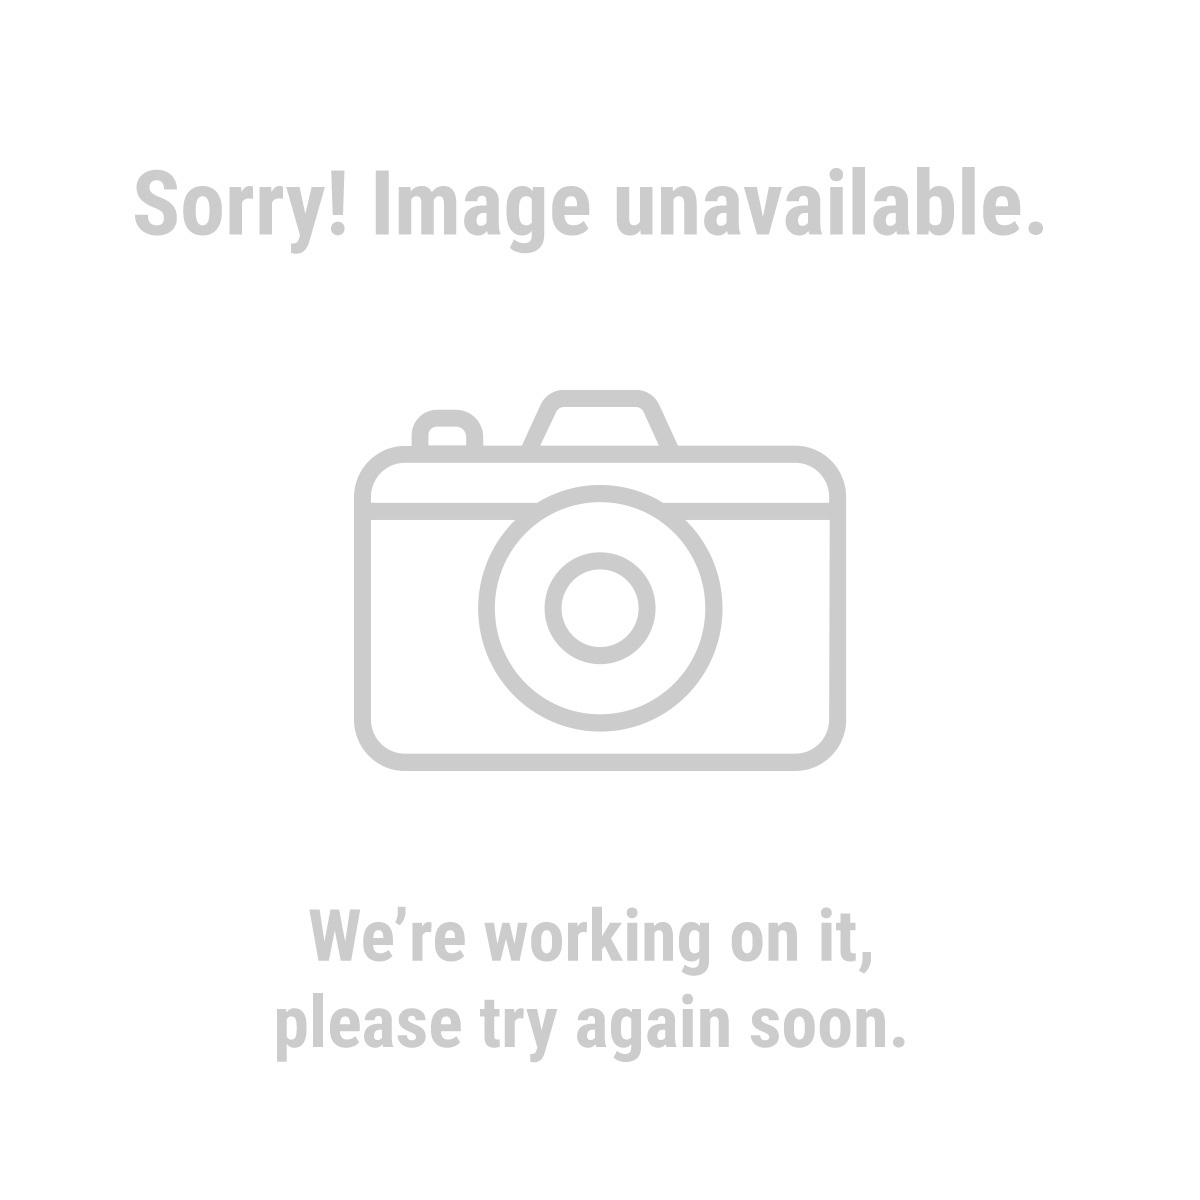 "Pittsburgh 67911 7 Piece 1/2"" Drive Metric Impact Swivel Socket Set"